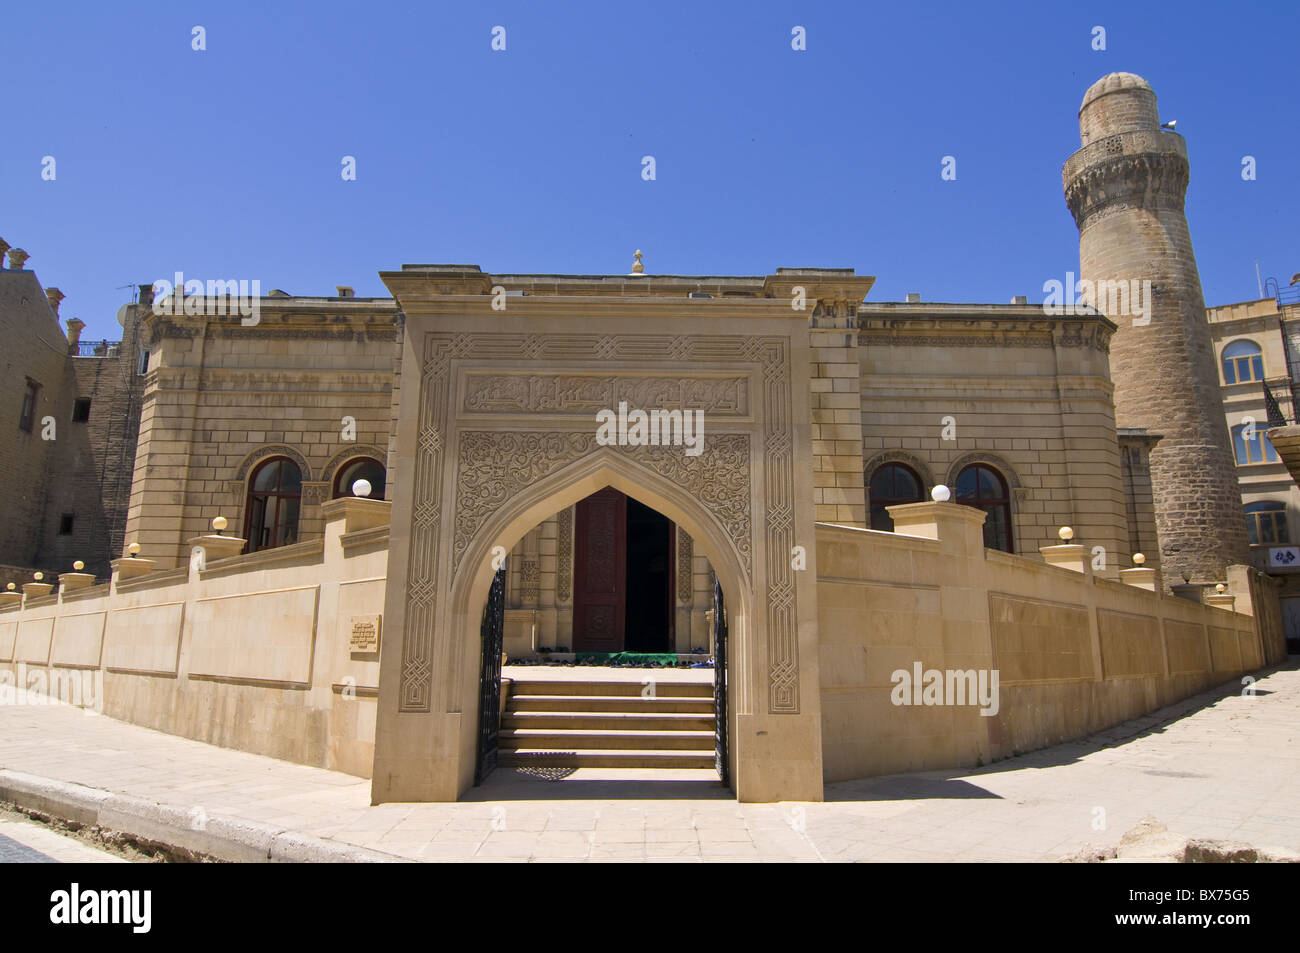 Entrance of the Lezgi Mosque in the old town of Baku, UNESCO World Heritage Site, Azerbaijan, Central Asia, Asia - Stock Image